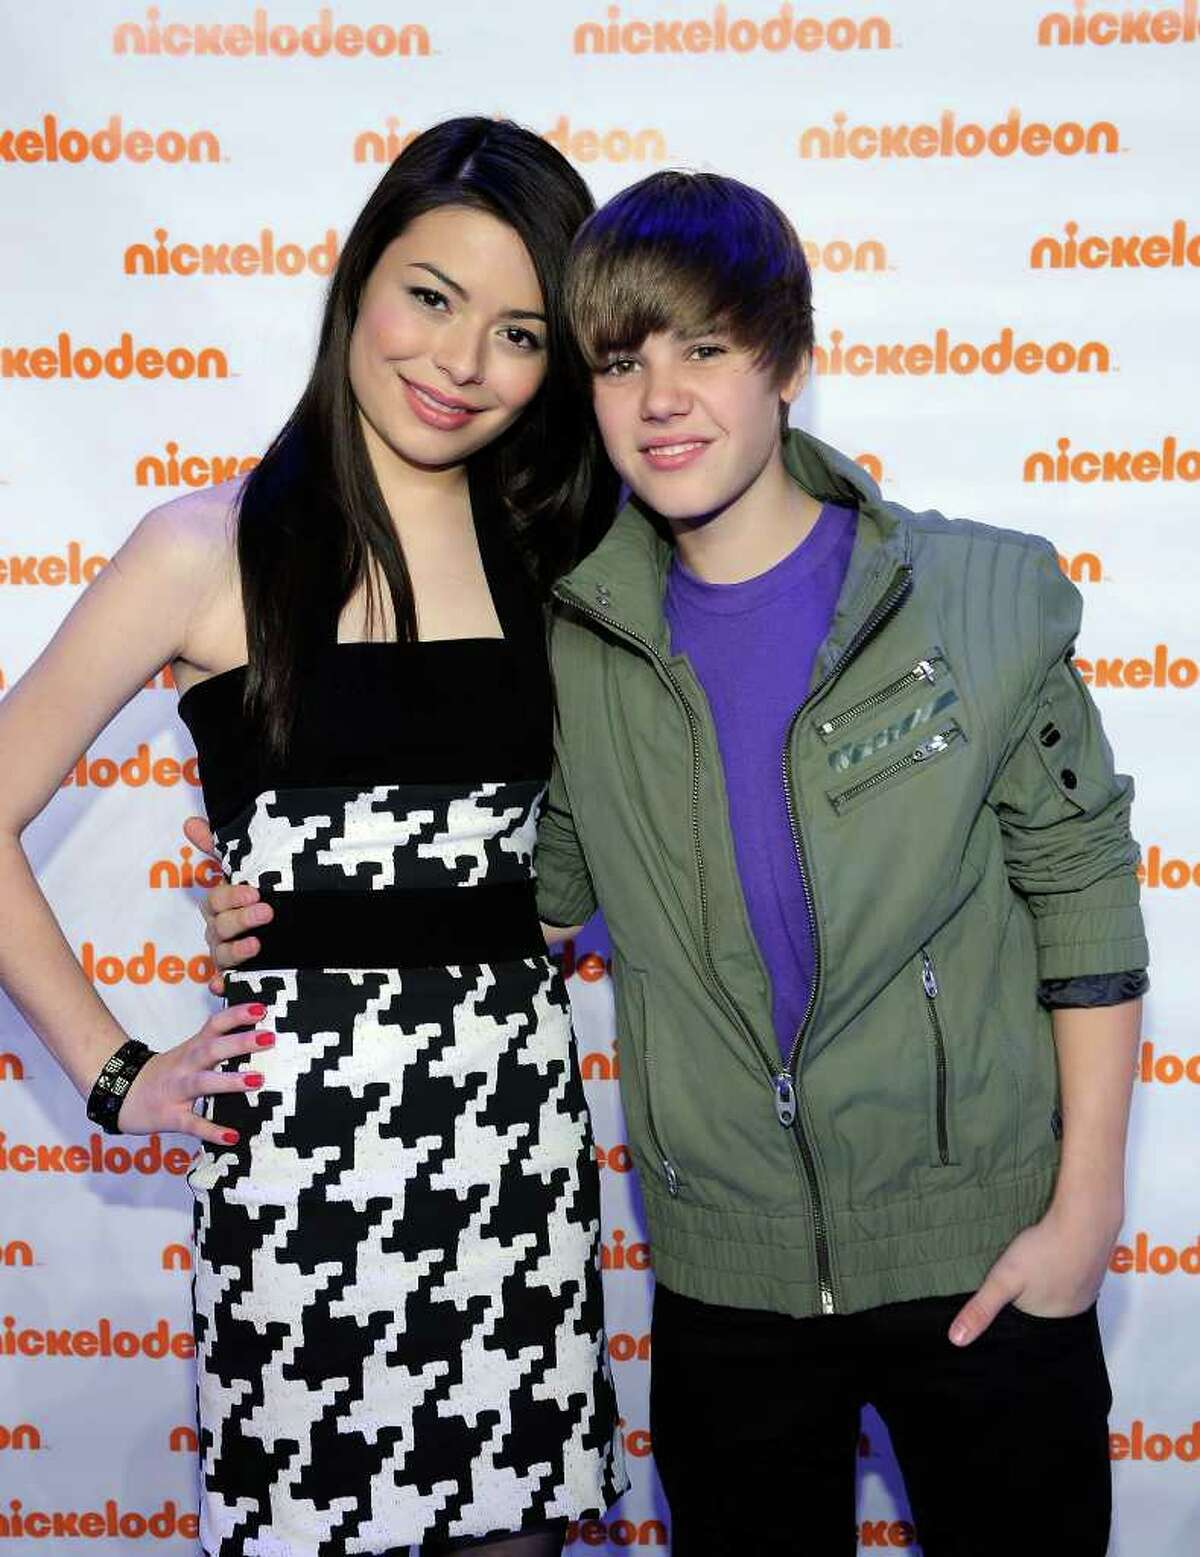 Actress Miranda Cosgrove and musician Justin Bieber attend the Nickelodeon 2010 Upfront Presentation at Hammerstein Ballroom on March 11, 2010 in New York City. (Photo by Larry Busacca/Getty Images for Nickelodeon)